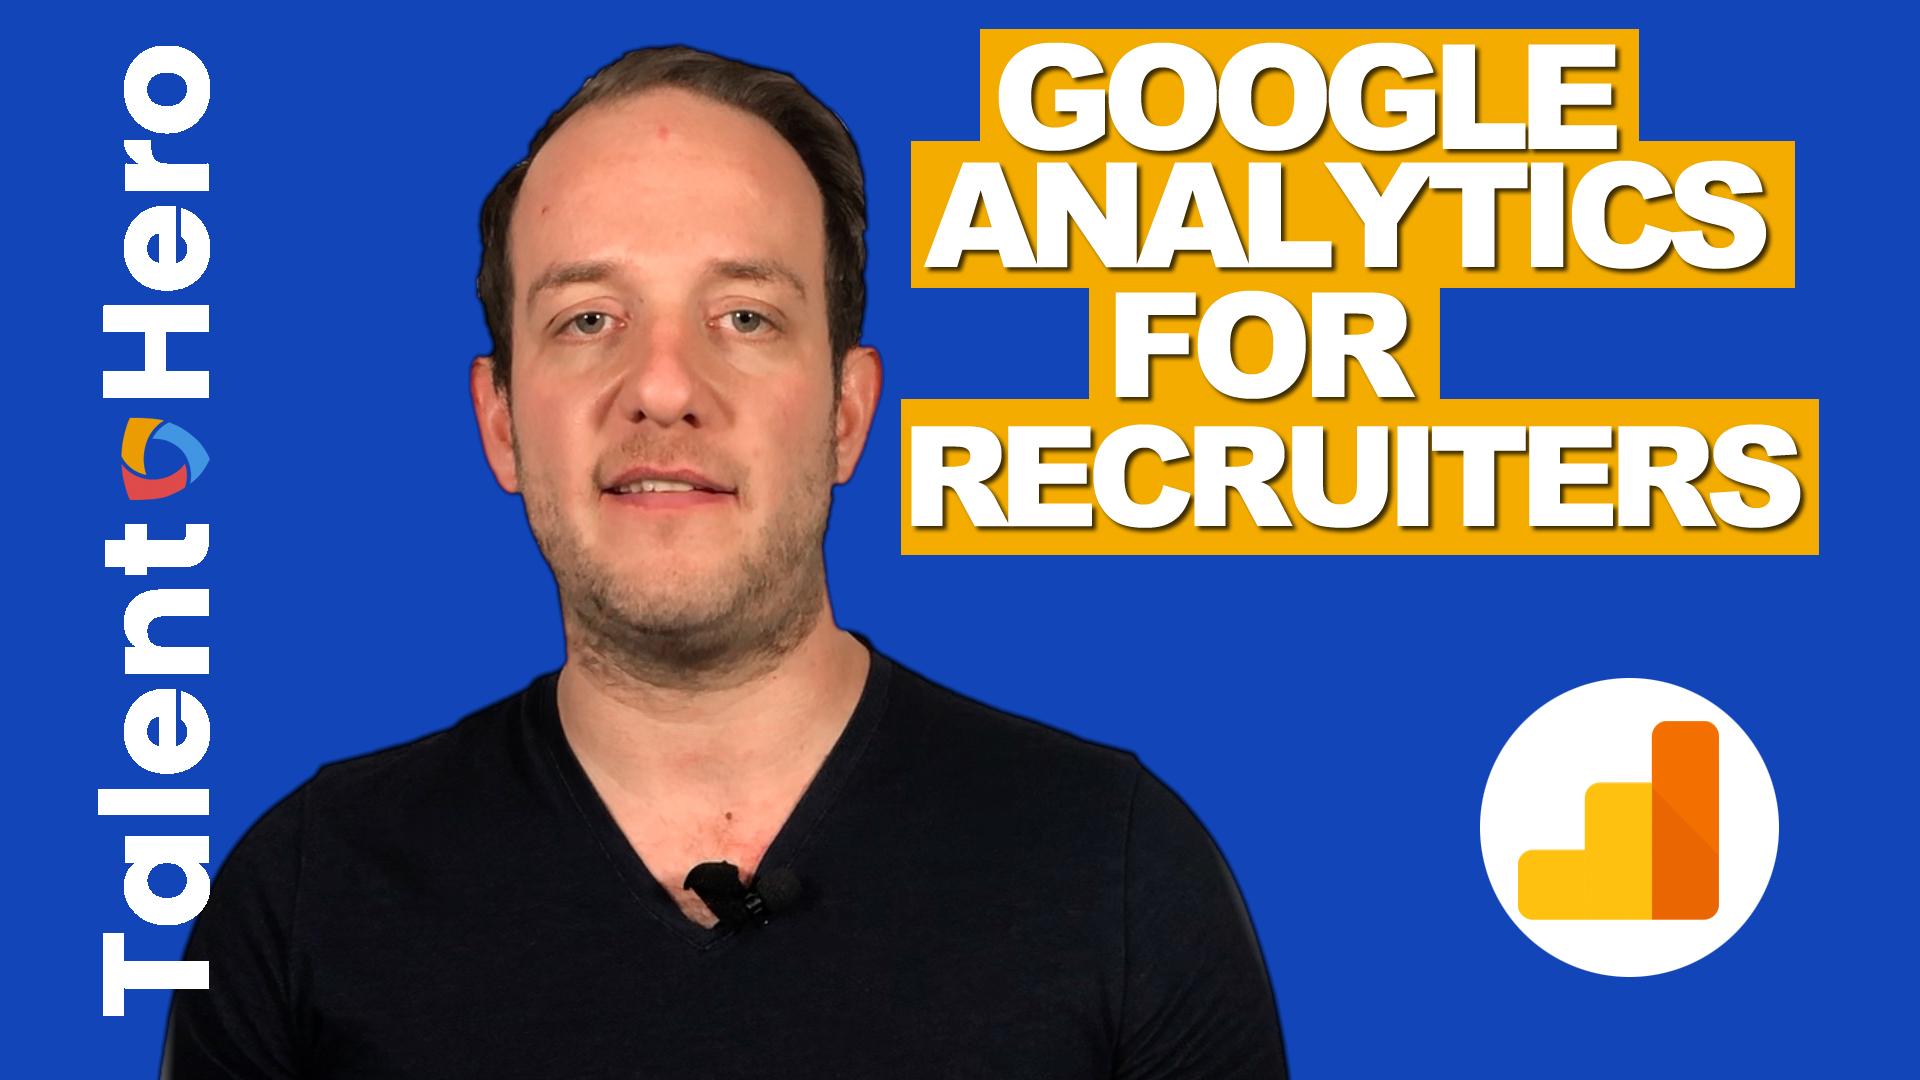 Google Analytics For Recruiters Thumbnail